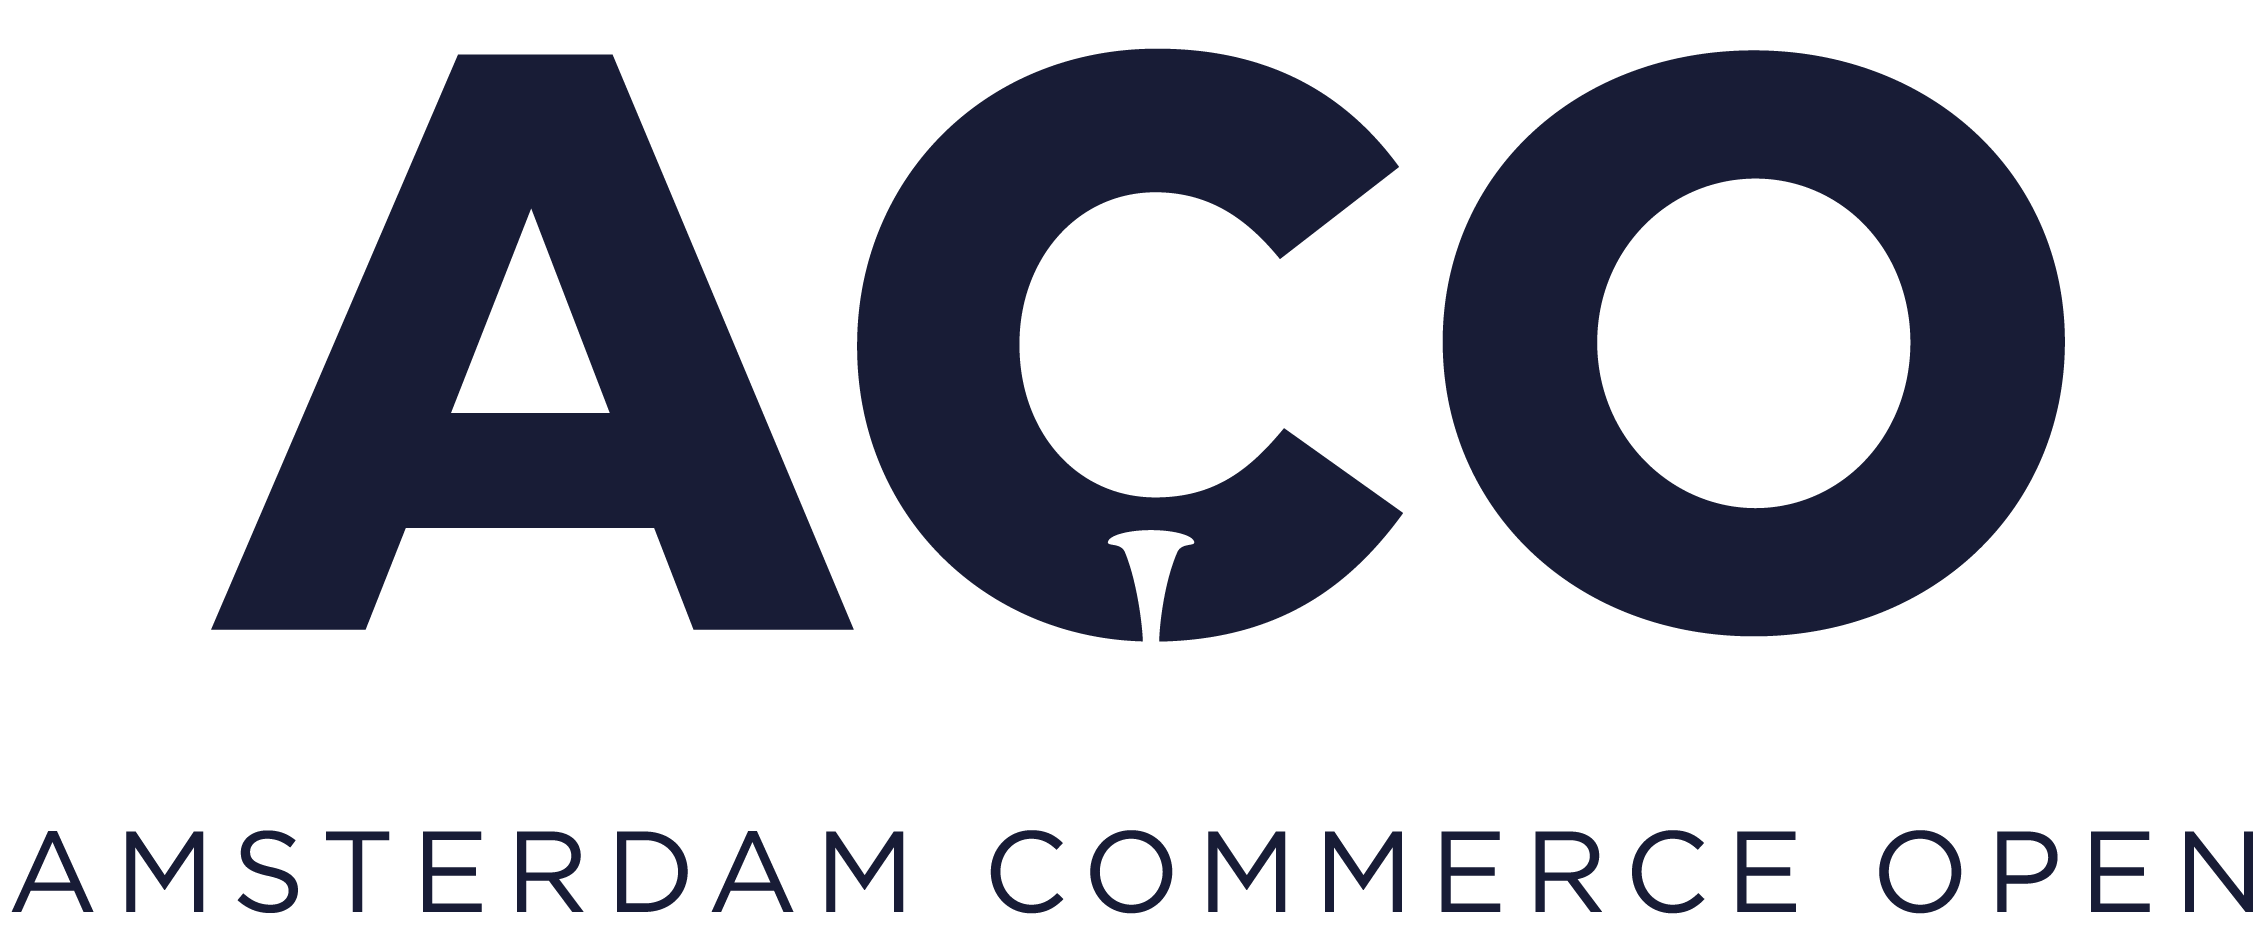 Amsterdam Commerce Open